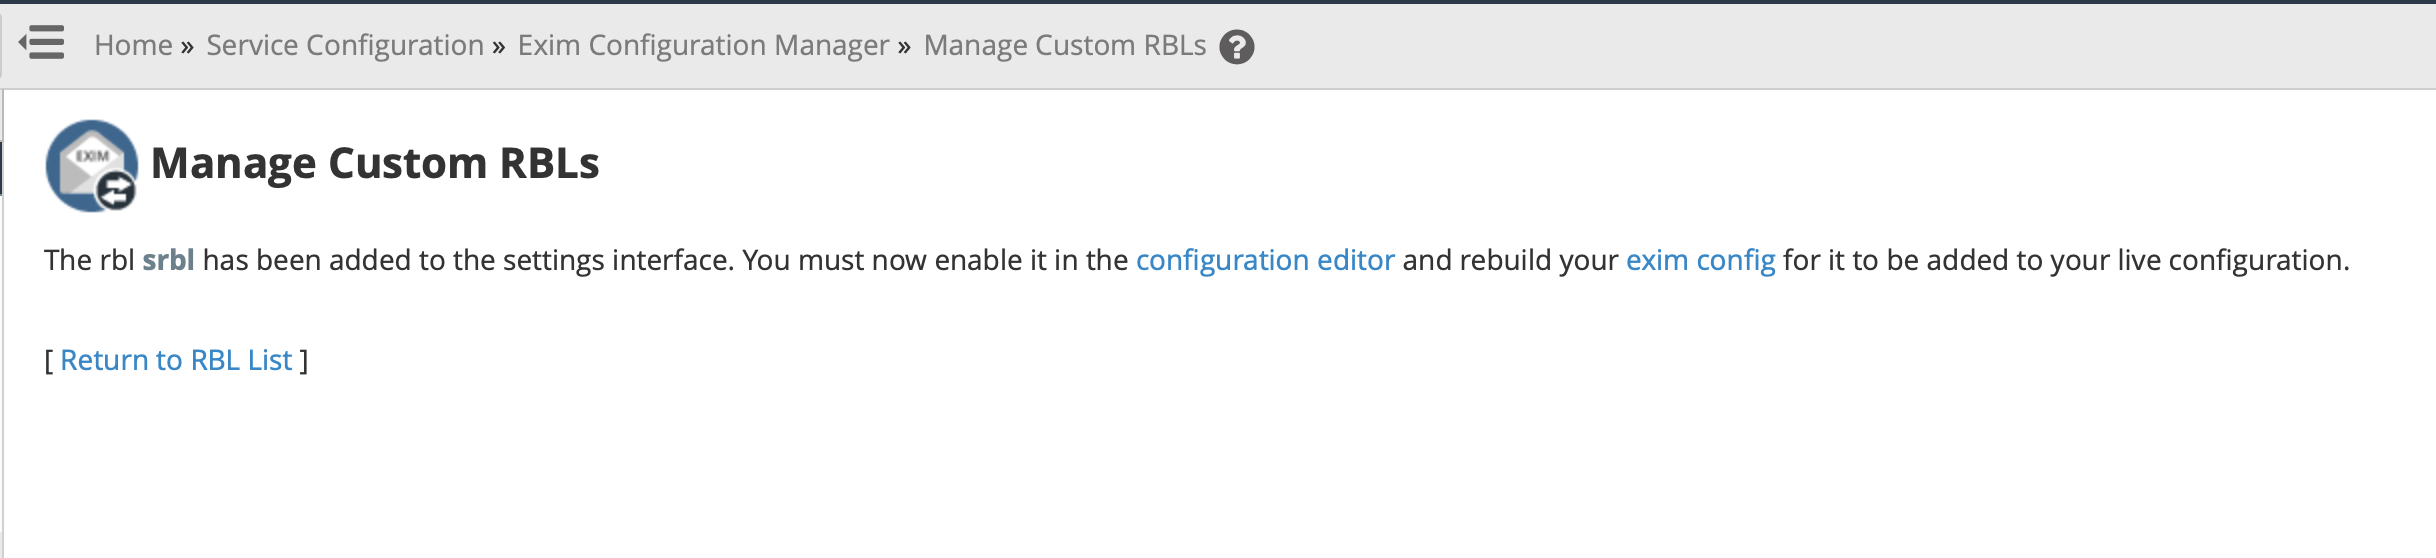 Manage Custom RBLs - Add